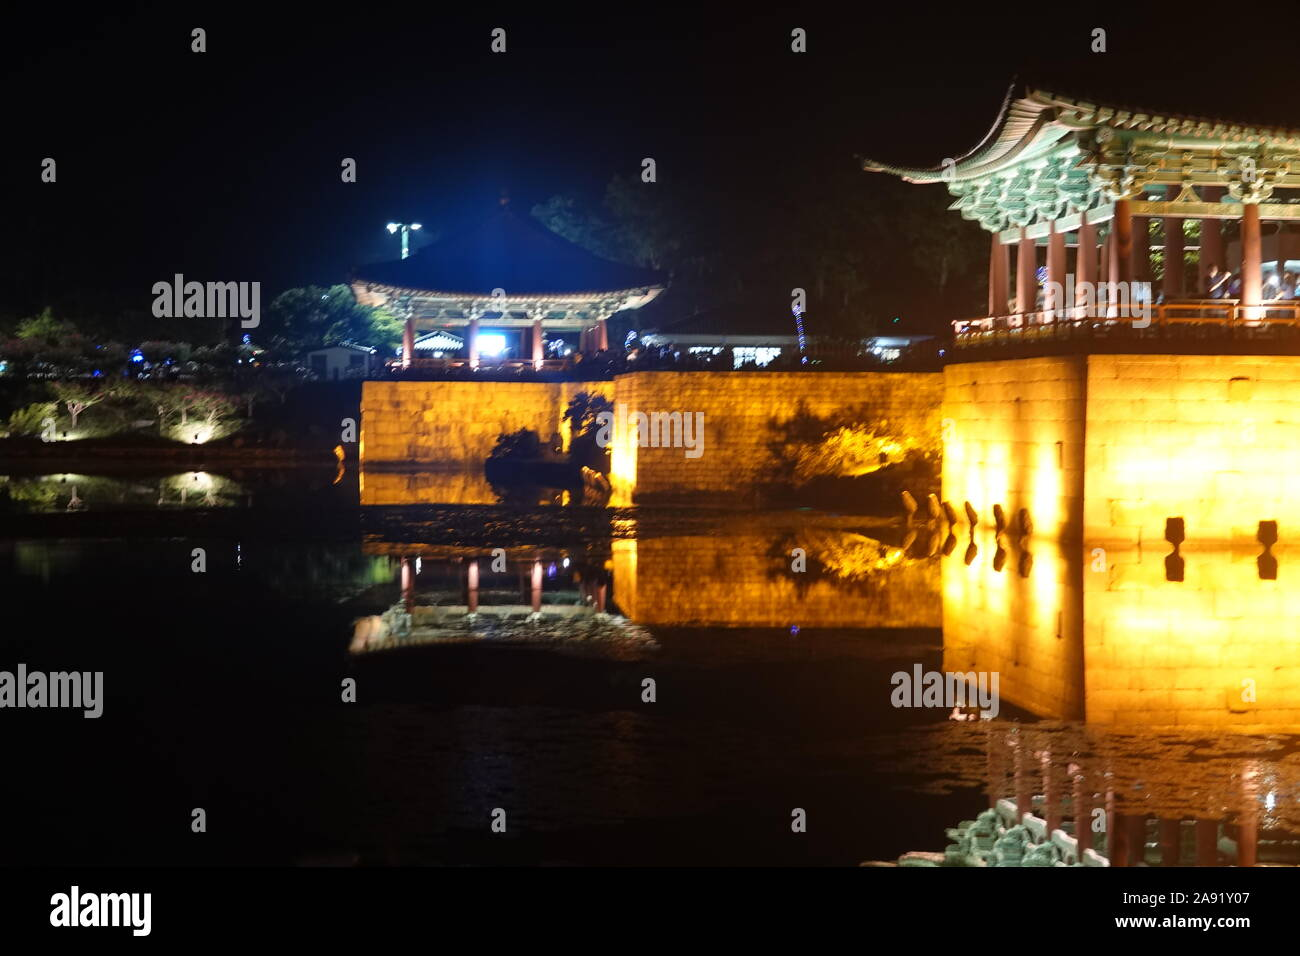 Ahn-ap-ji in Republic of Korea Stock Photo